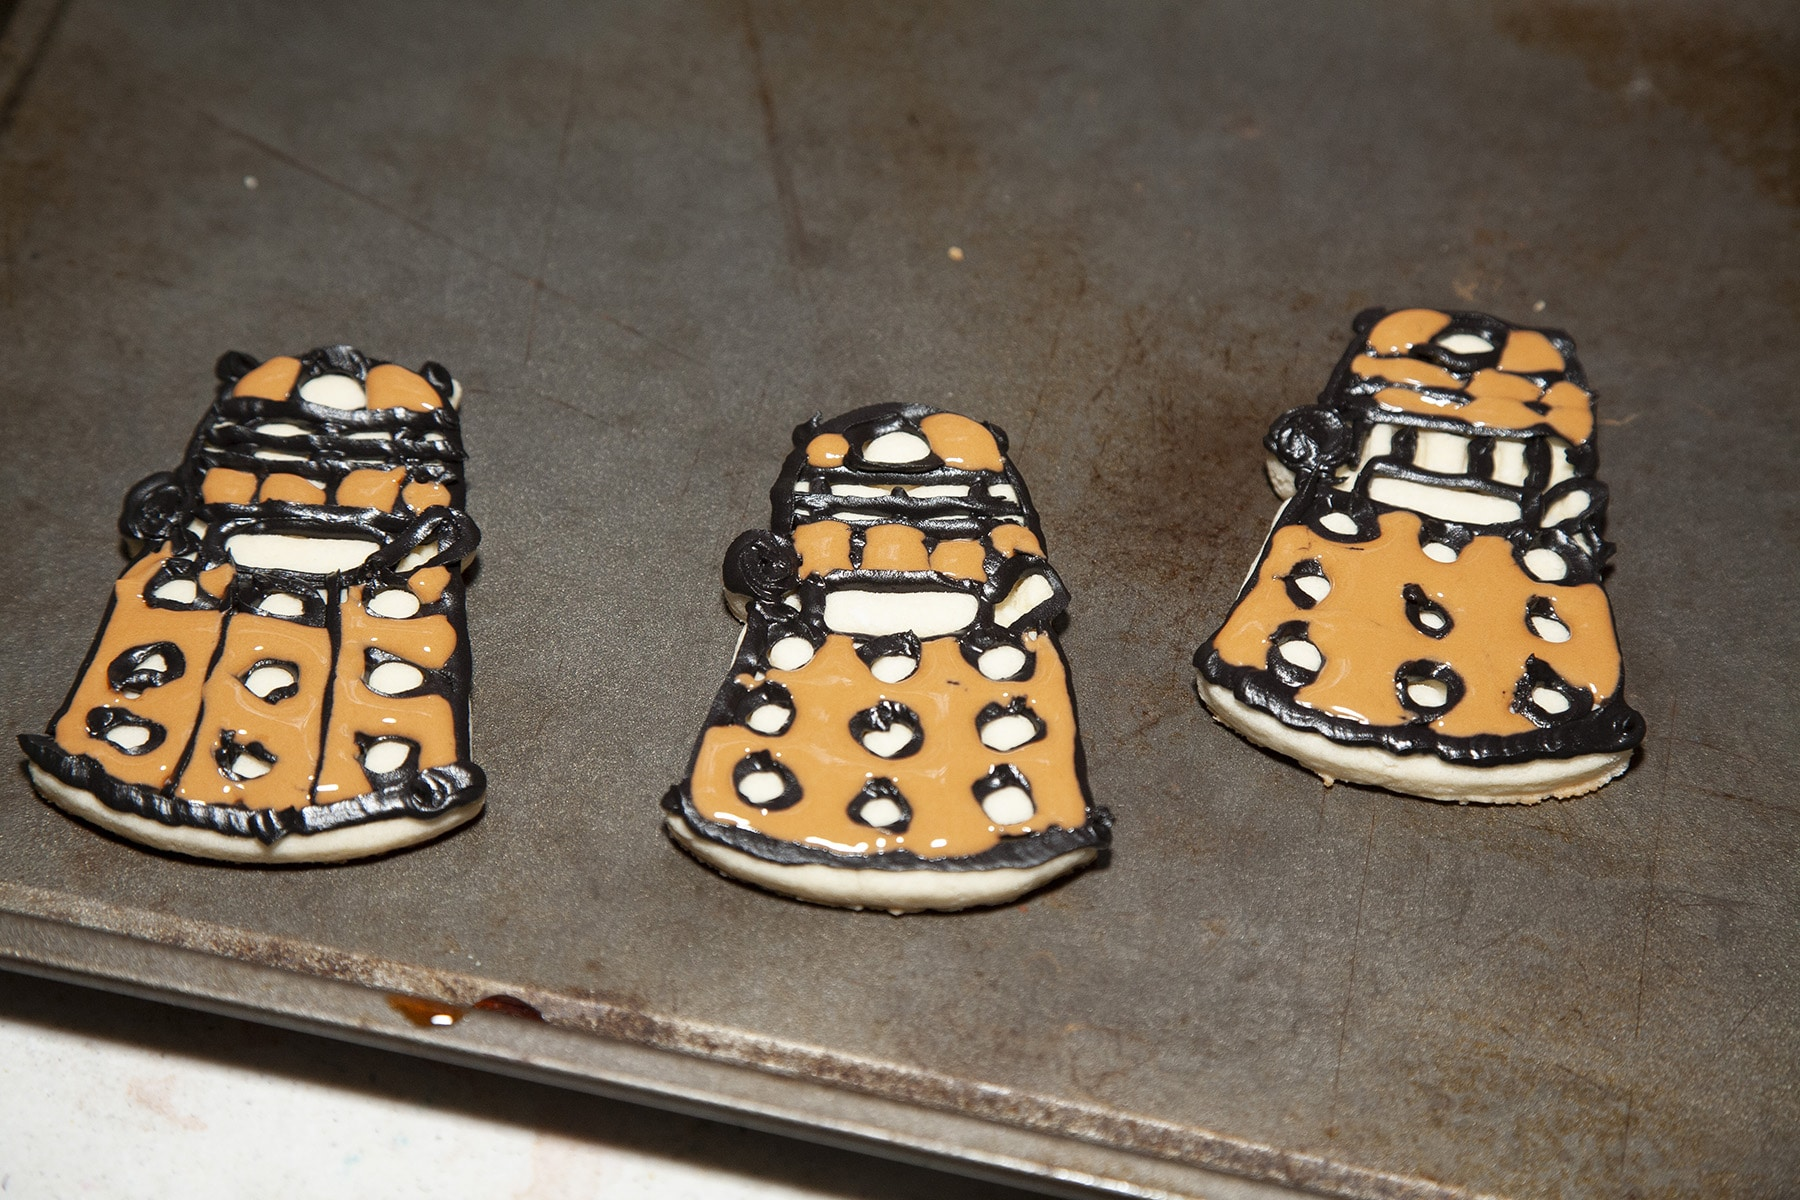 3 Dalek cookies with the main areas filled in with brown frosting.